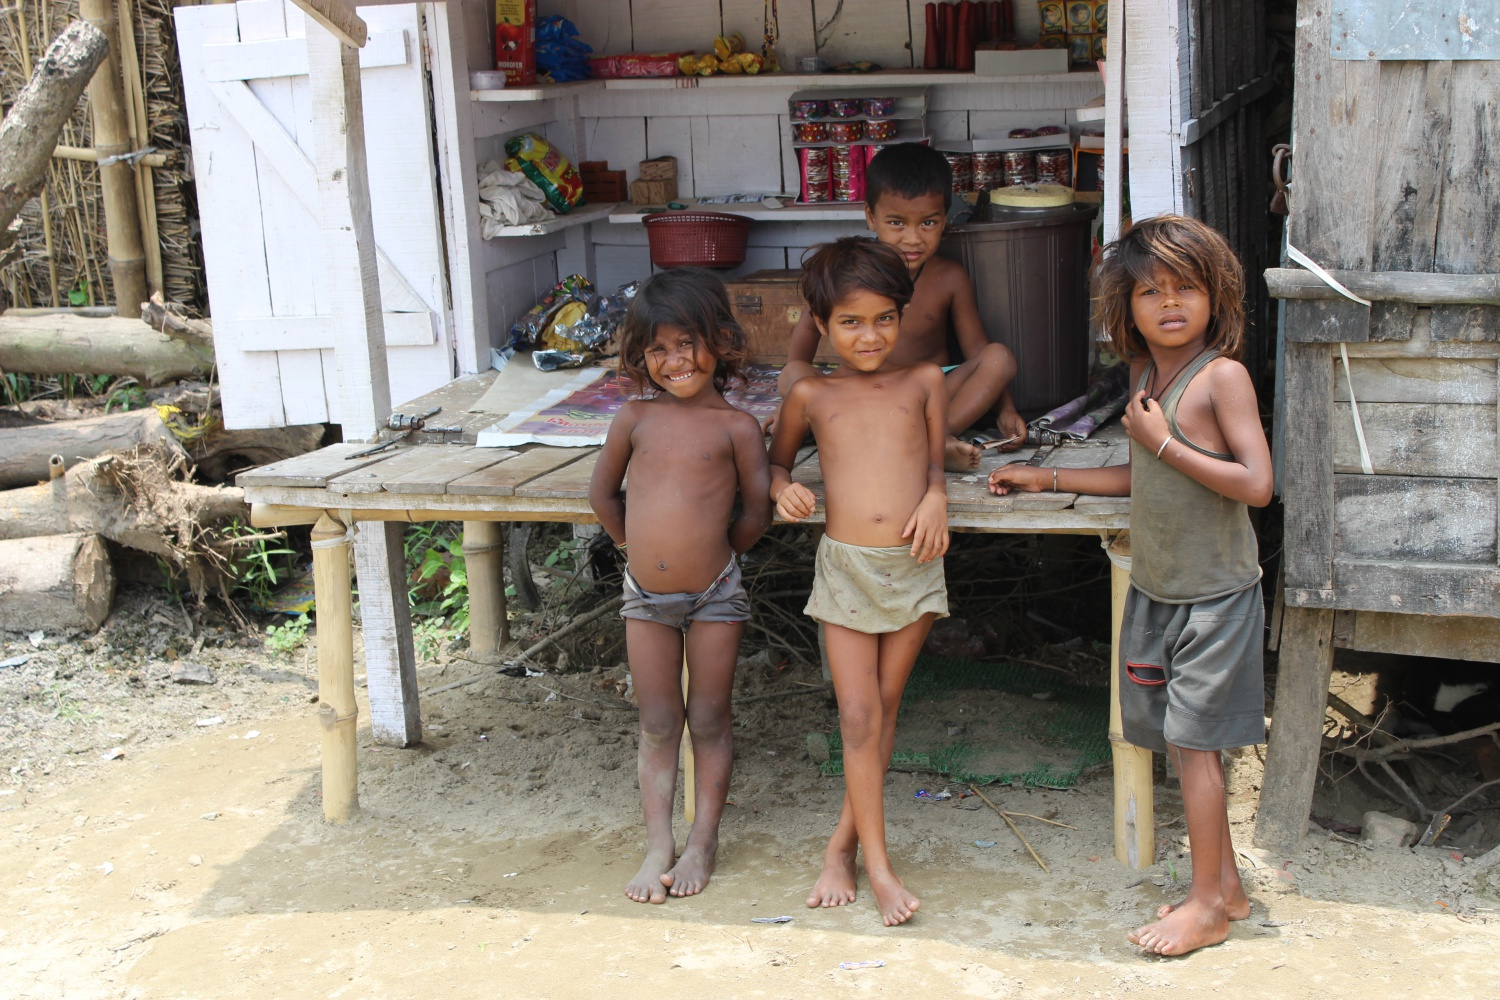 Children in Tuniahi Dakhinwari village of Madhepura. Poor nutrition leaves the children vulnerable to disease, susceptible to infections and diseases such as tuberculosis and cholera. Deprived of adequate nutrition in their formative early years, these children remain mentally and physically stunted for life.